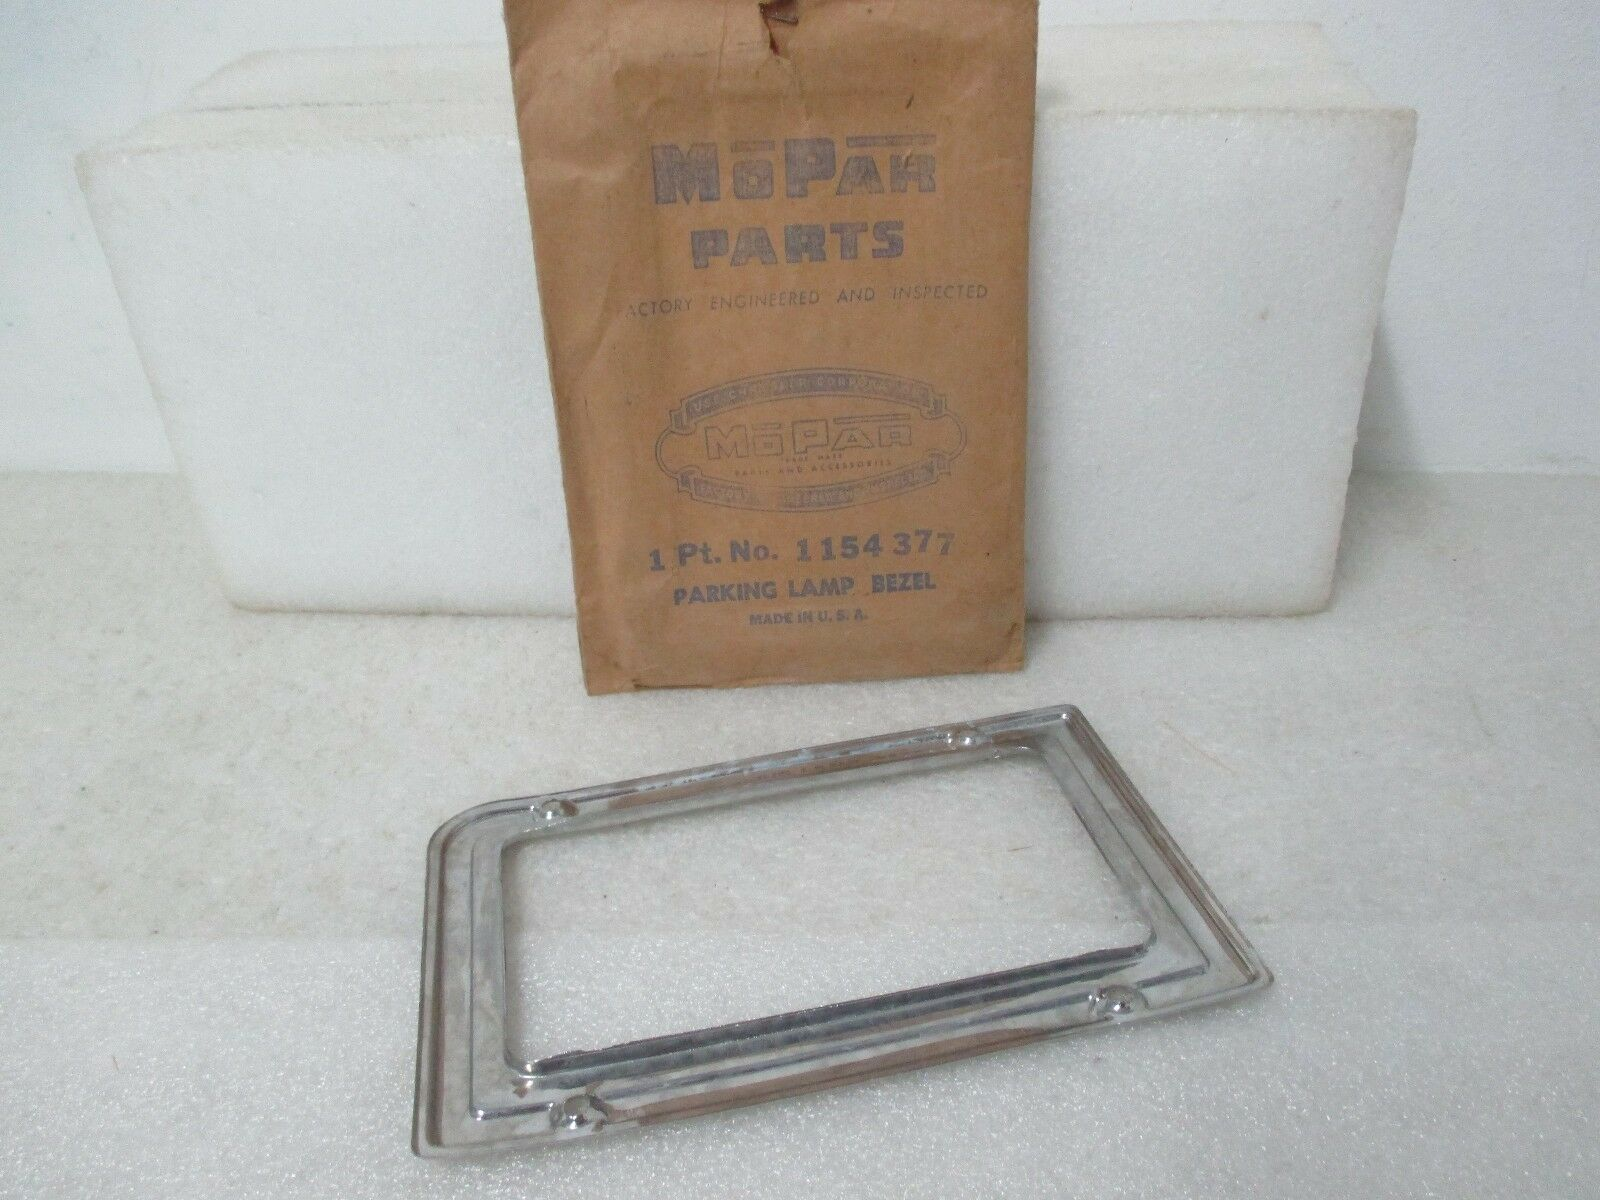 Mopar NOS 1946-48 Dodge Left Hand Front Park /& Turn Signal Lamp Bezel 1154377